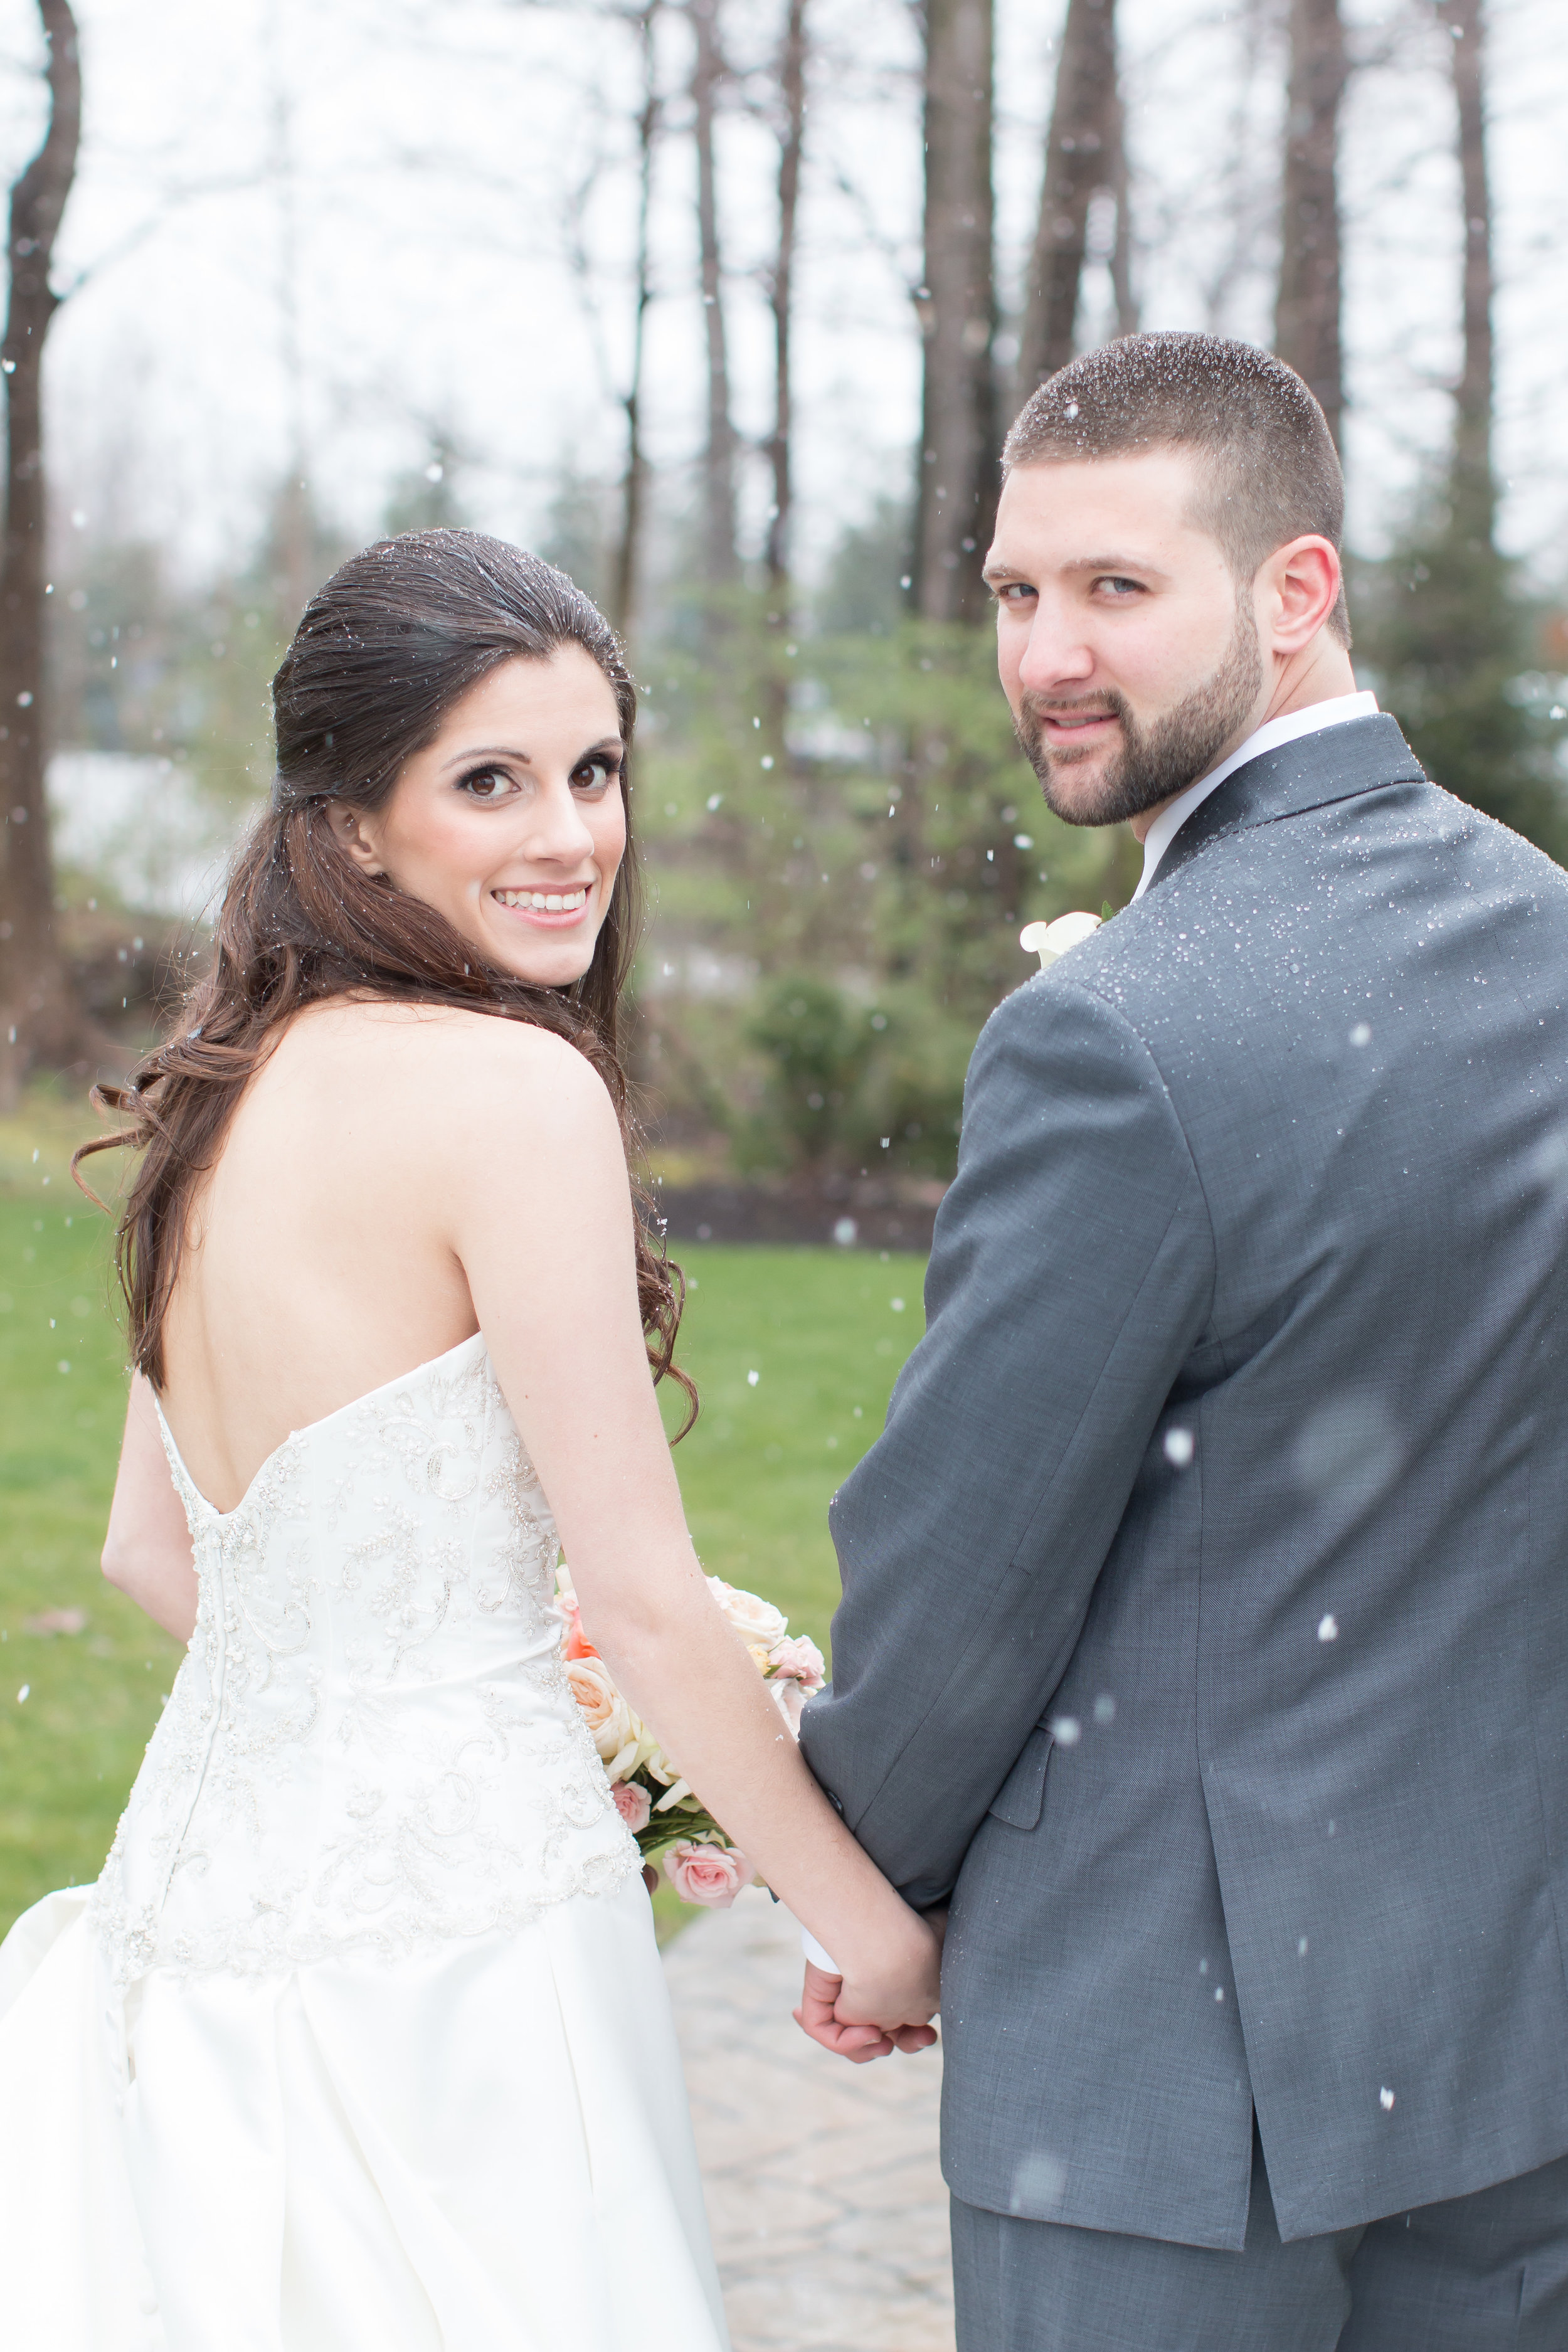 Snow in April!?!?! yeah, this couple rocked the surprise snow storm!